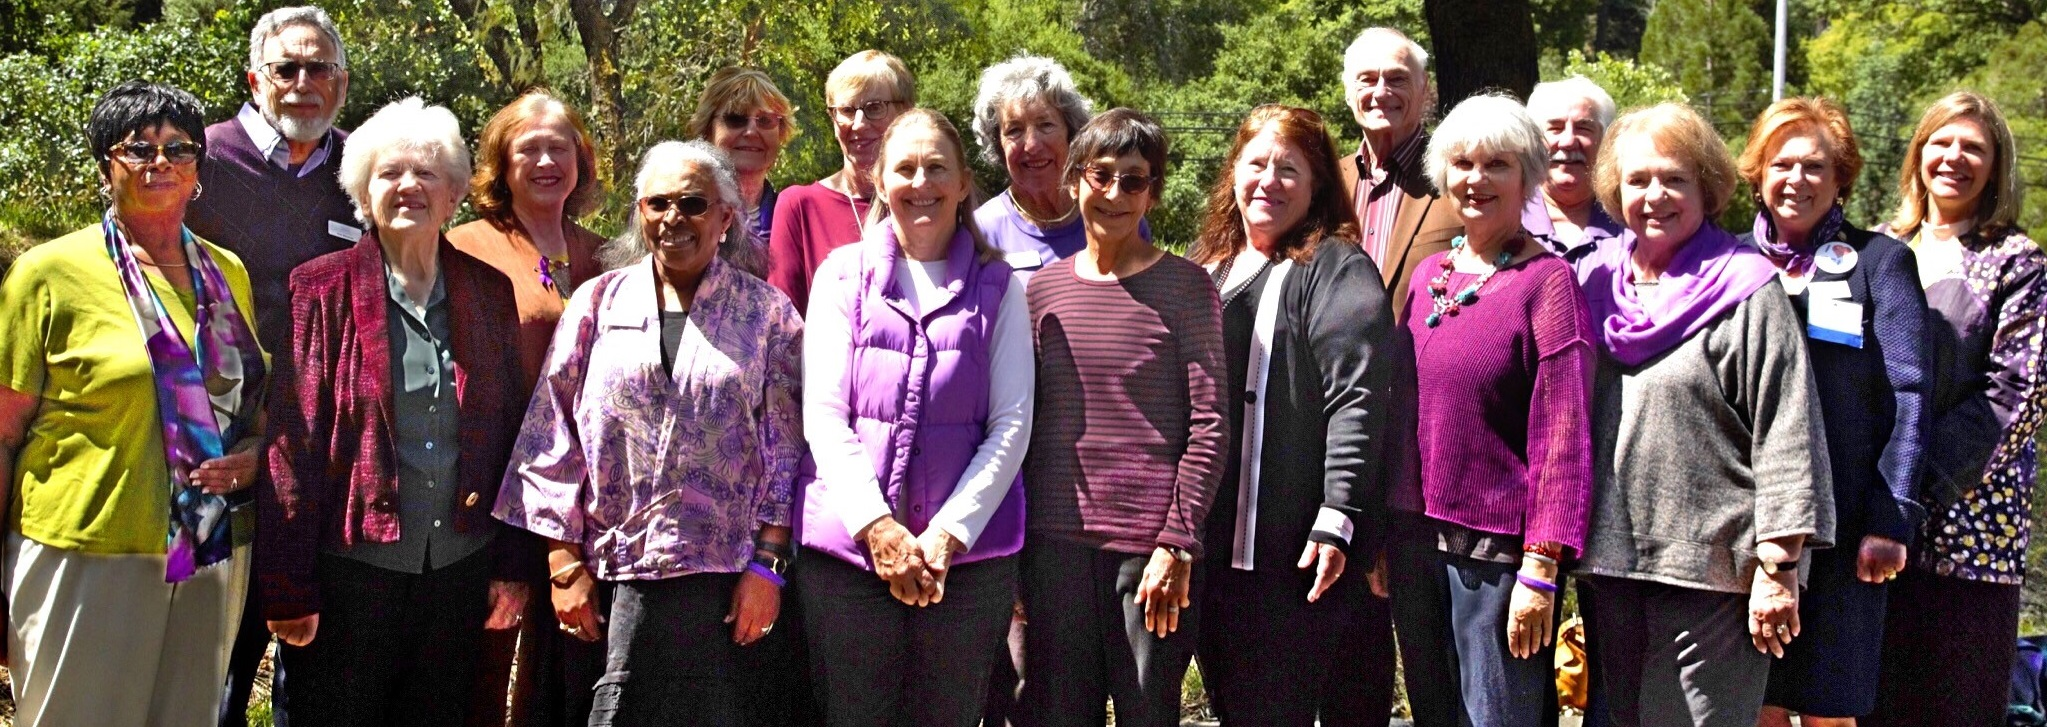 Commission On Aging Marin Health And Human Services